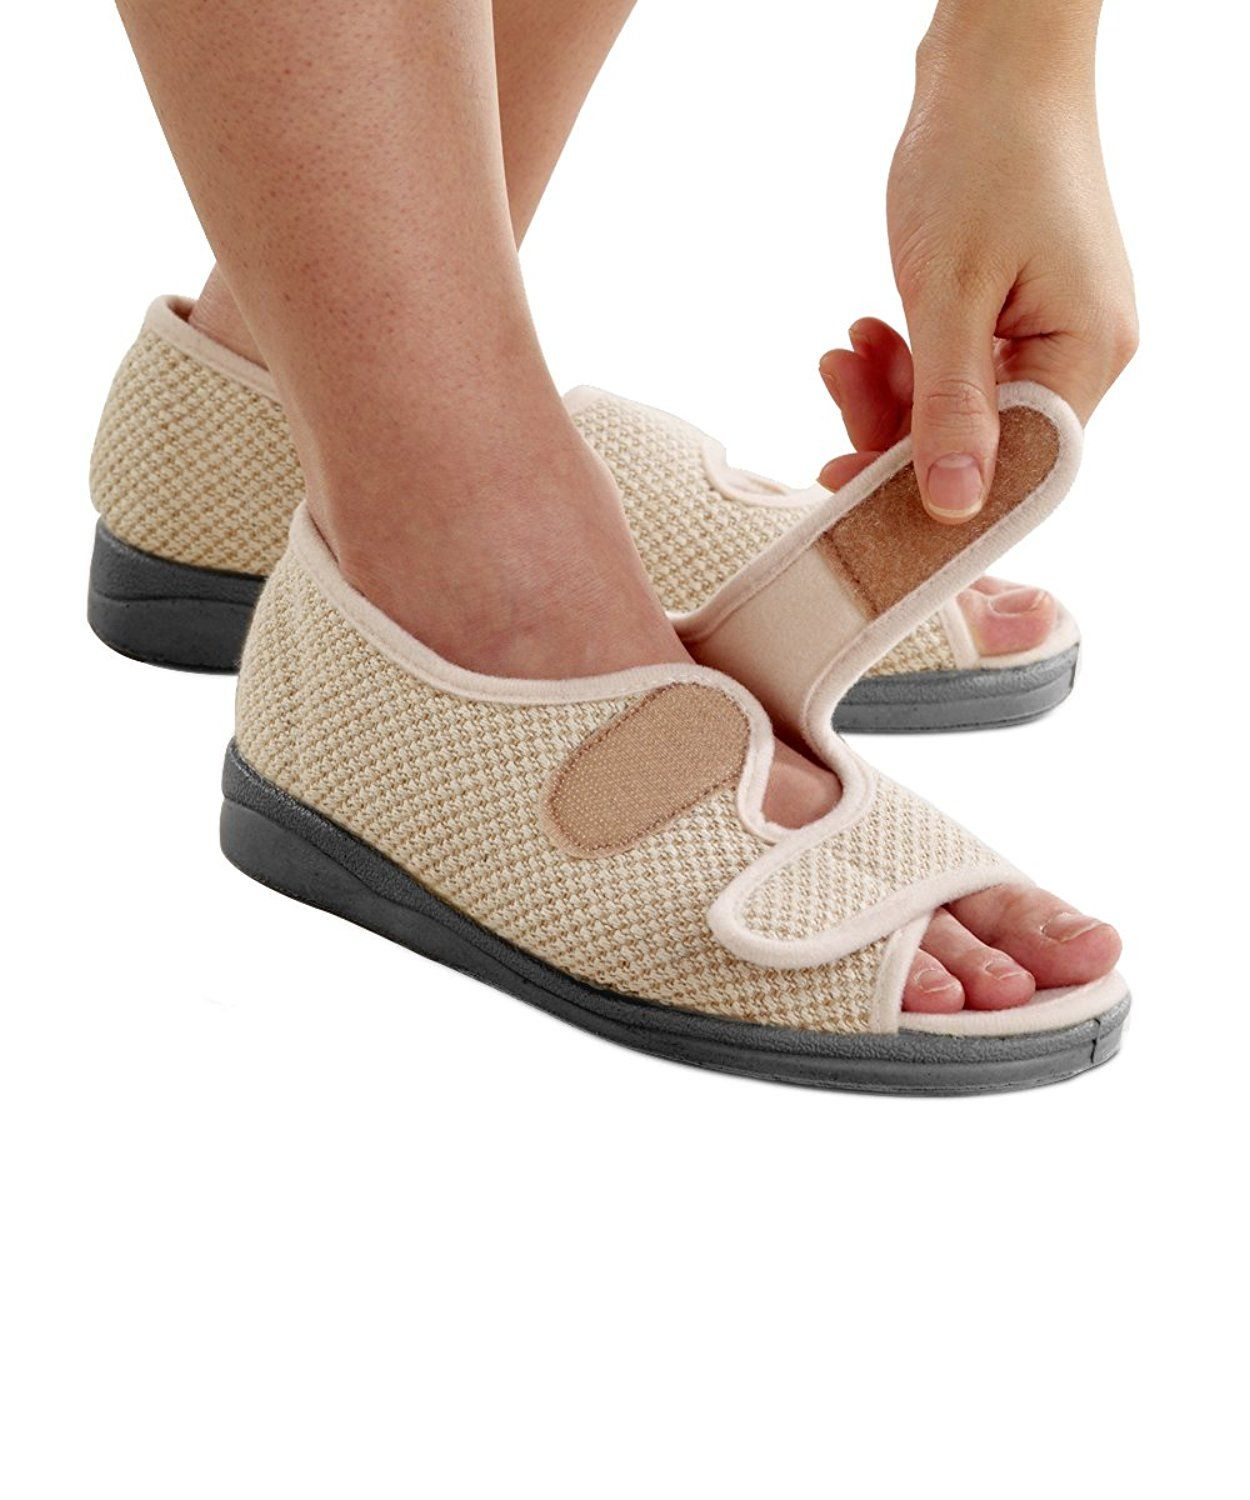 139d9a08e52d9 Amazon.com | Womens Comfortable Indoor/Outdoor Sandals with VELCRO ...